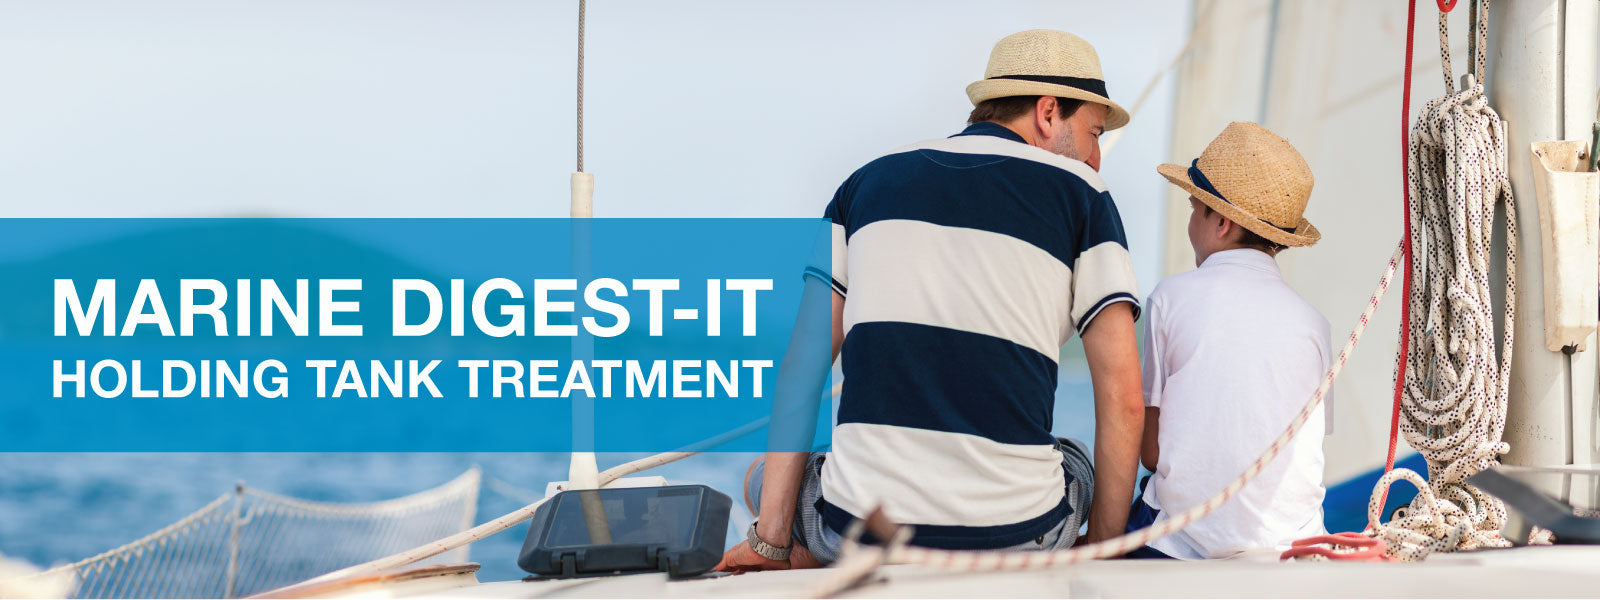 Marine Digest-It Holding Tank Treatment. Break down waste and eliminate galley and head odors. Unique Camping + Marine